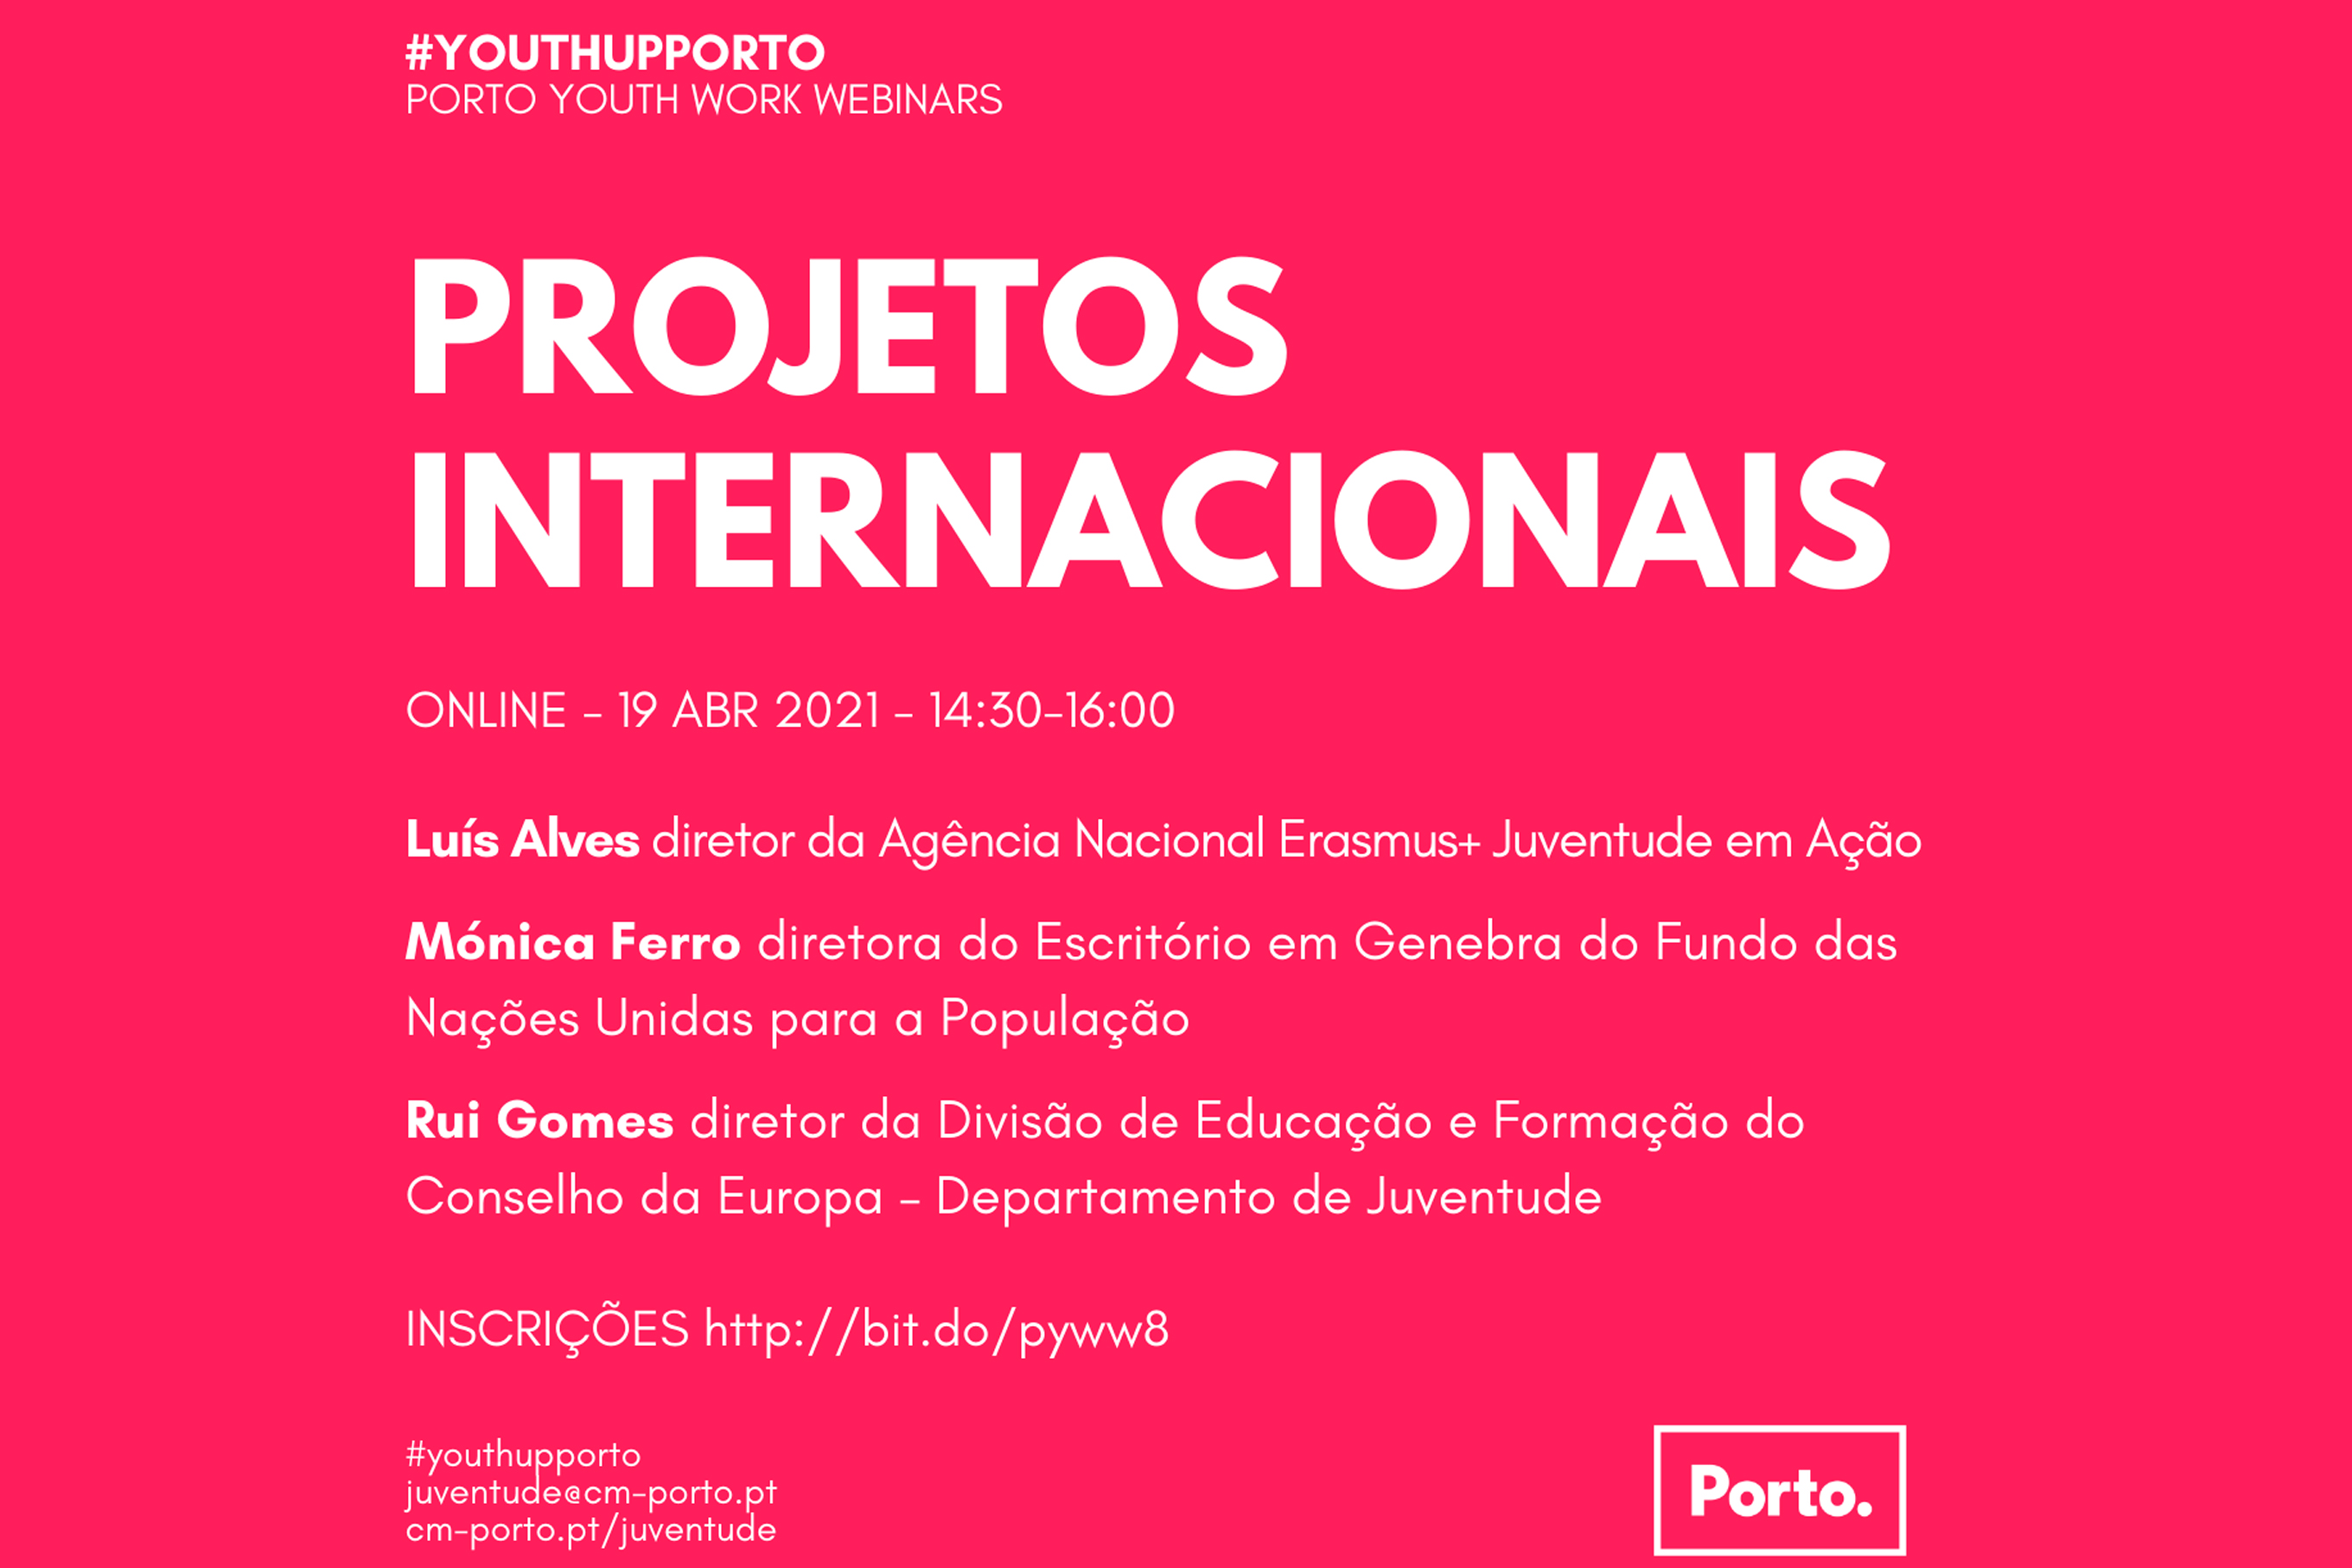 Projetos Internacionais (19 ABR 2021Porto Youth Work Webinars)